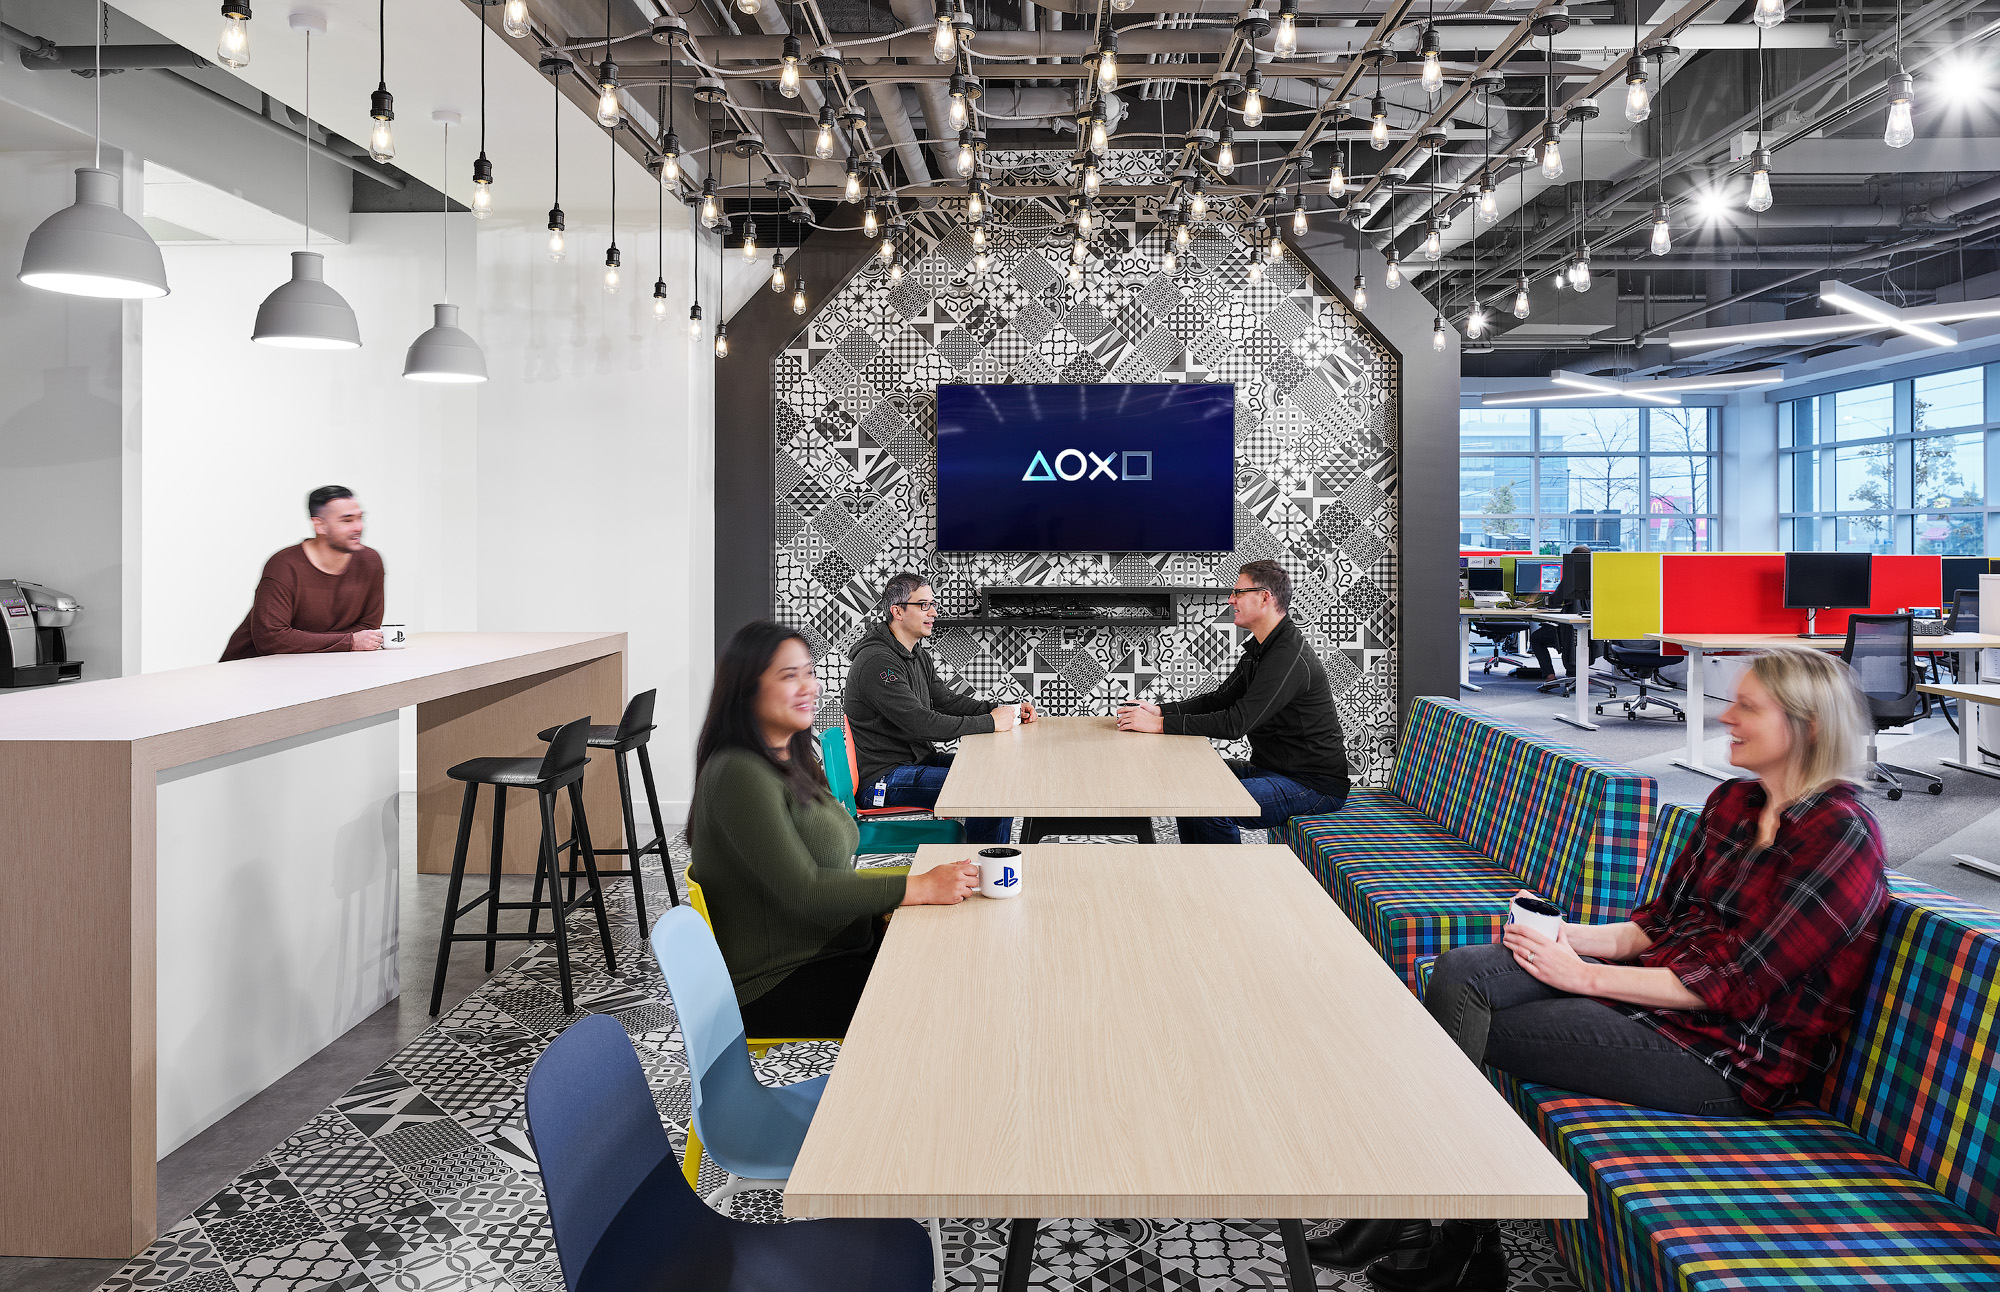 Sony SIE Toronto office lunchroom with bar, tables, and bench seating